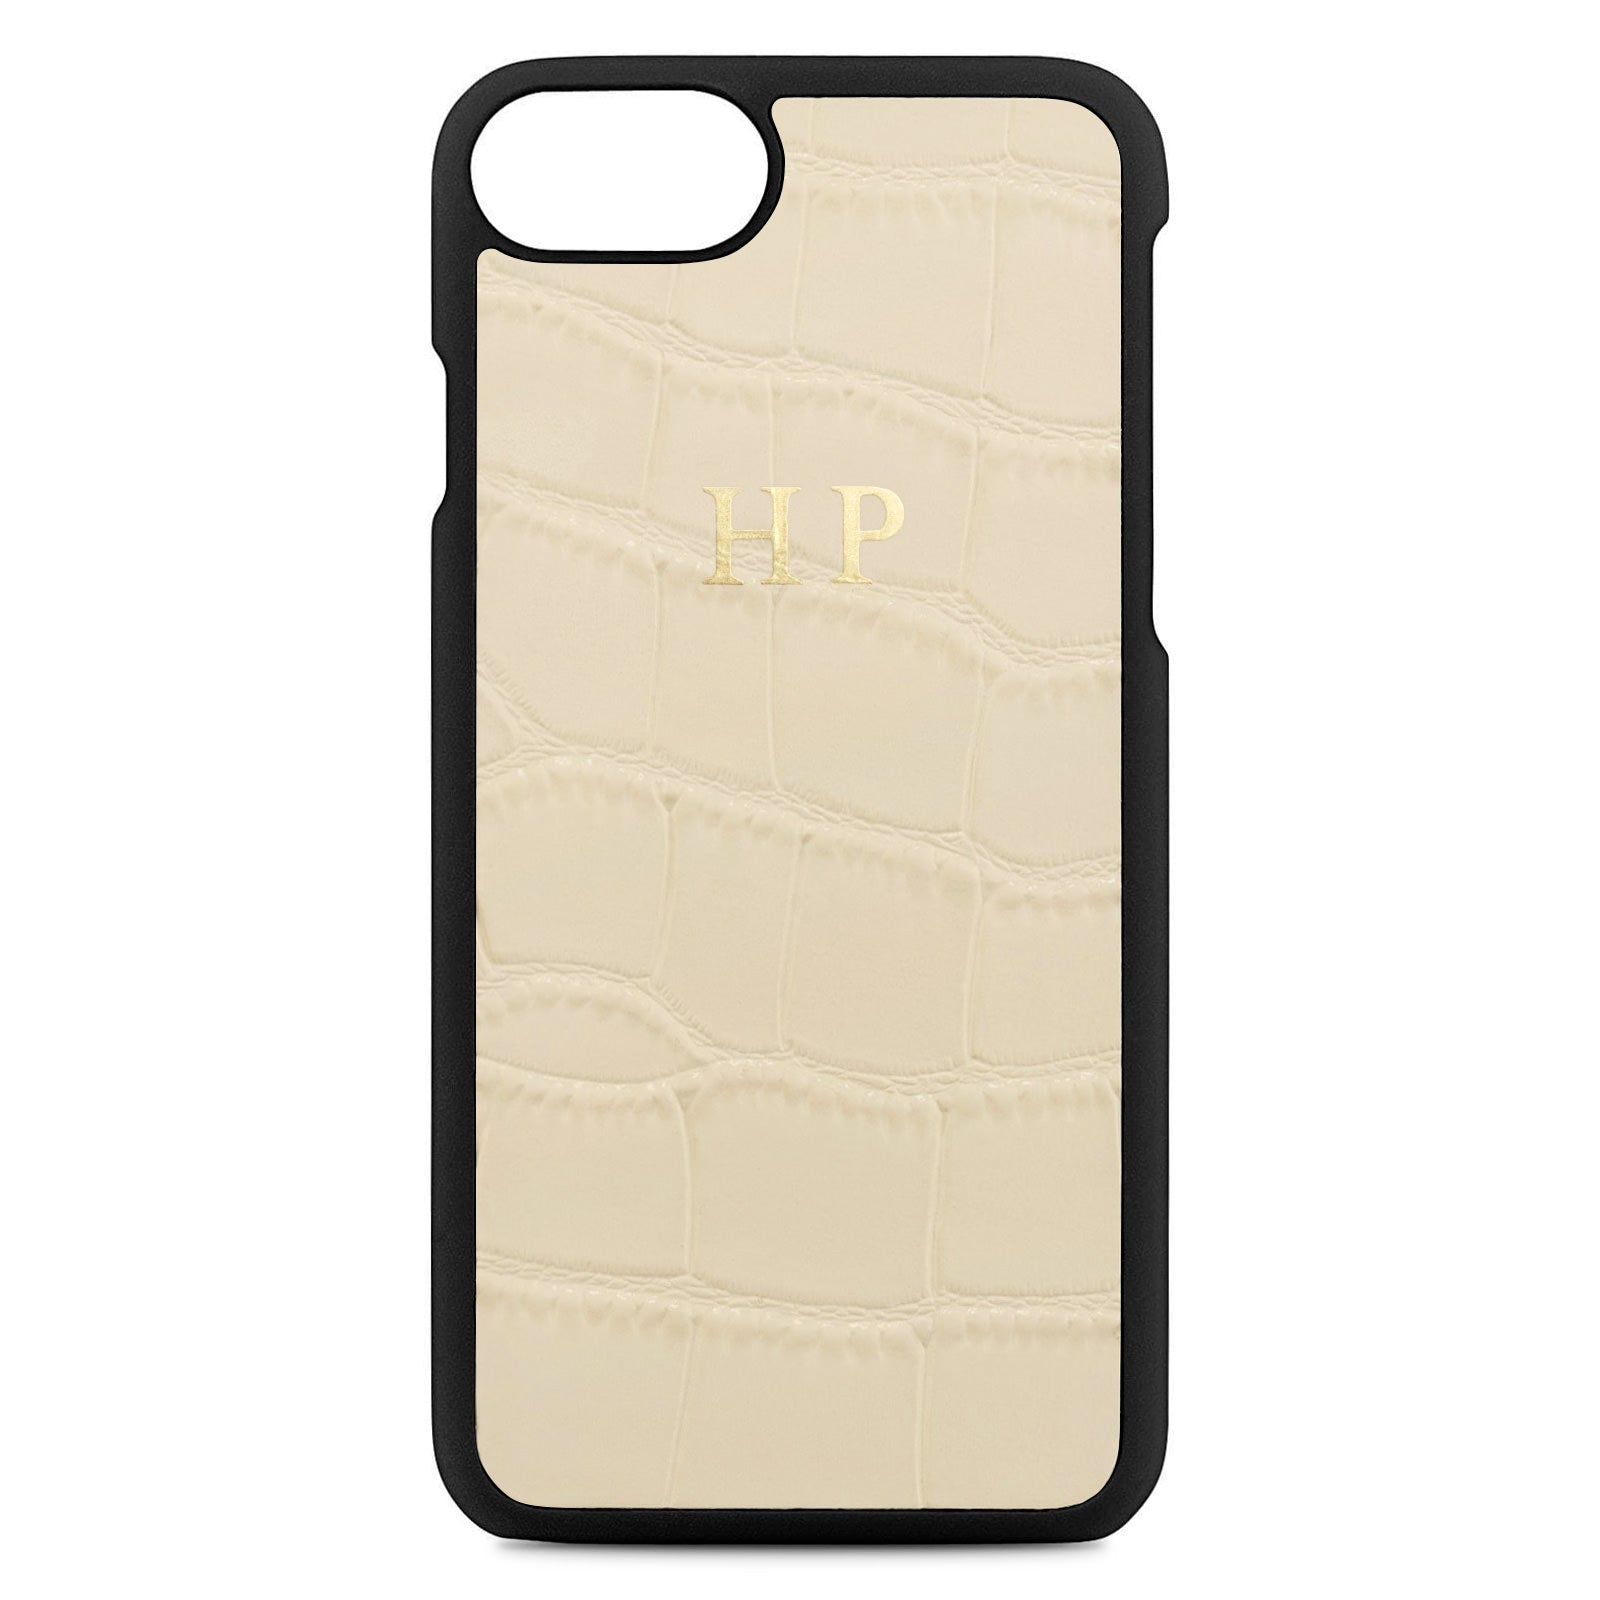 Personalised Ivory Croc Leather iPhone Case